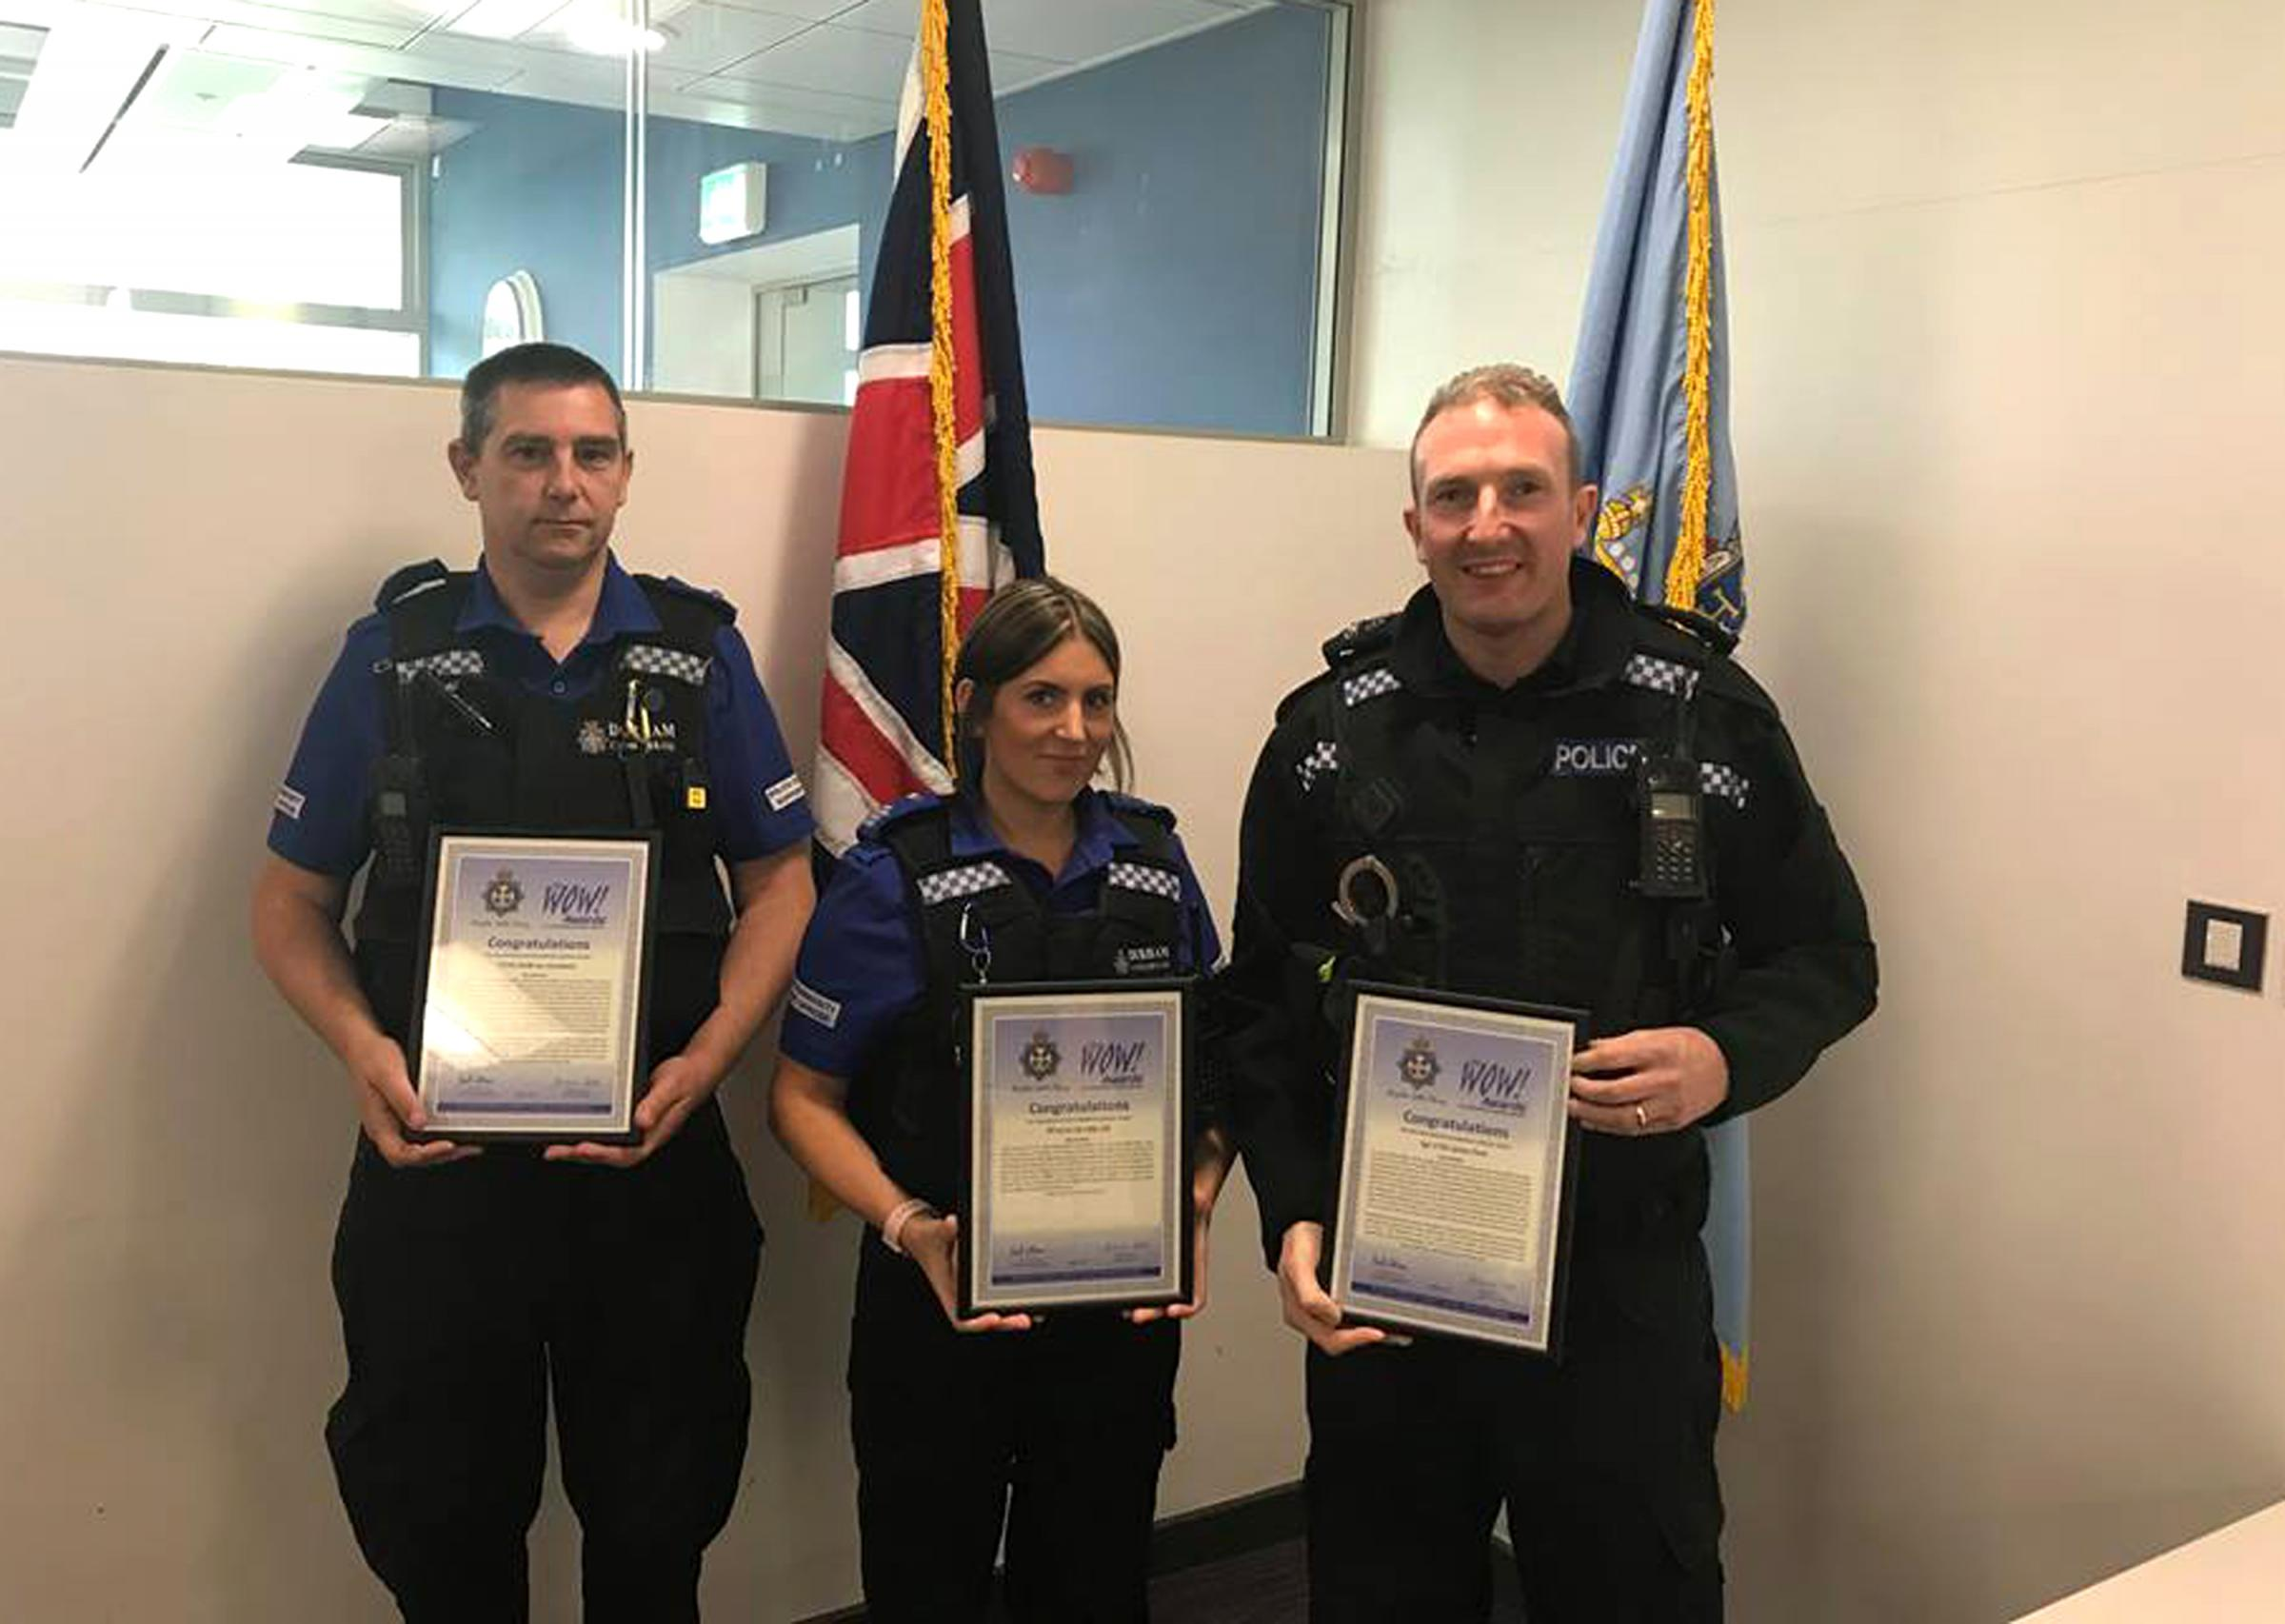 WOW: From left, PCSO Ian Goodwin, PSCO Vikki Gill and Sergeant Jiim Peel, who were presented with Wow awards Picture: Durham Police